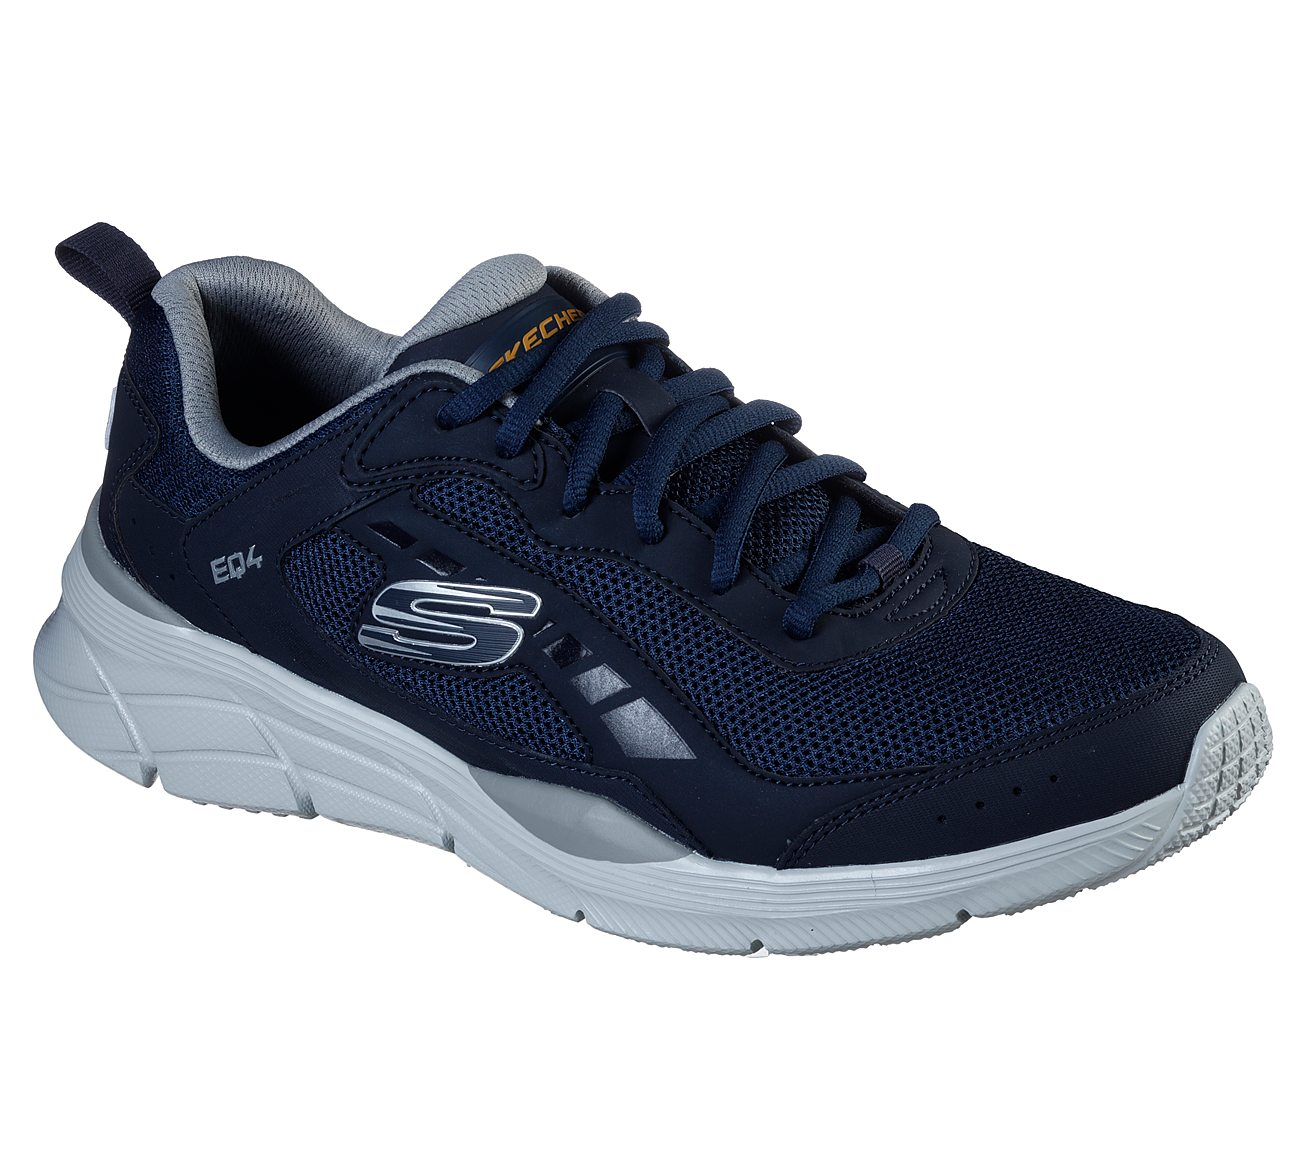 best deals on skechers shoes